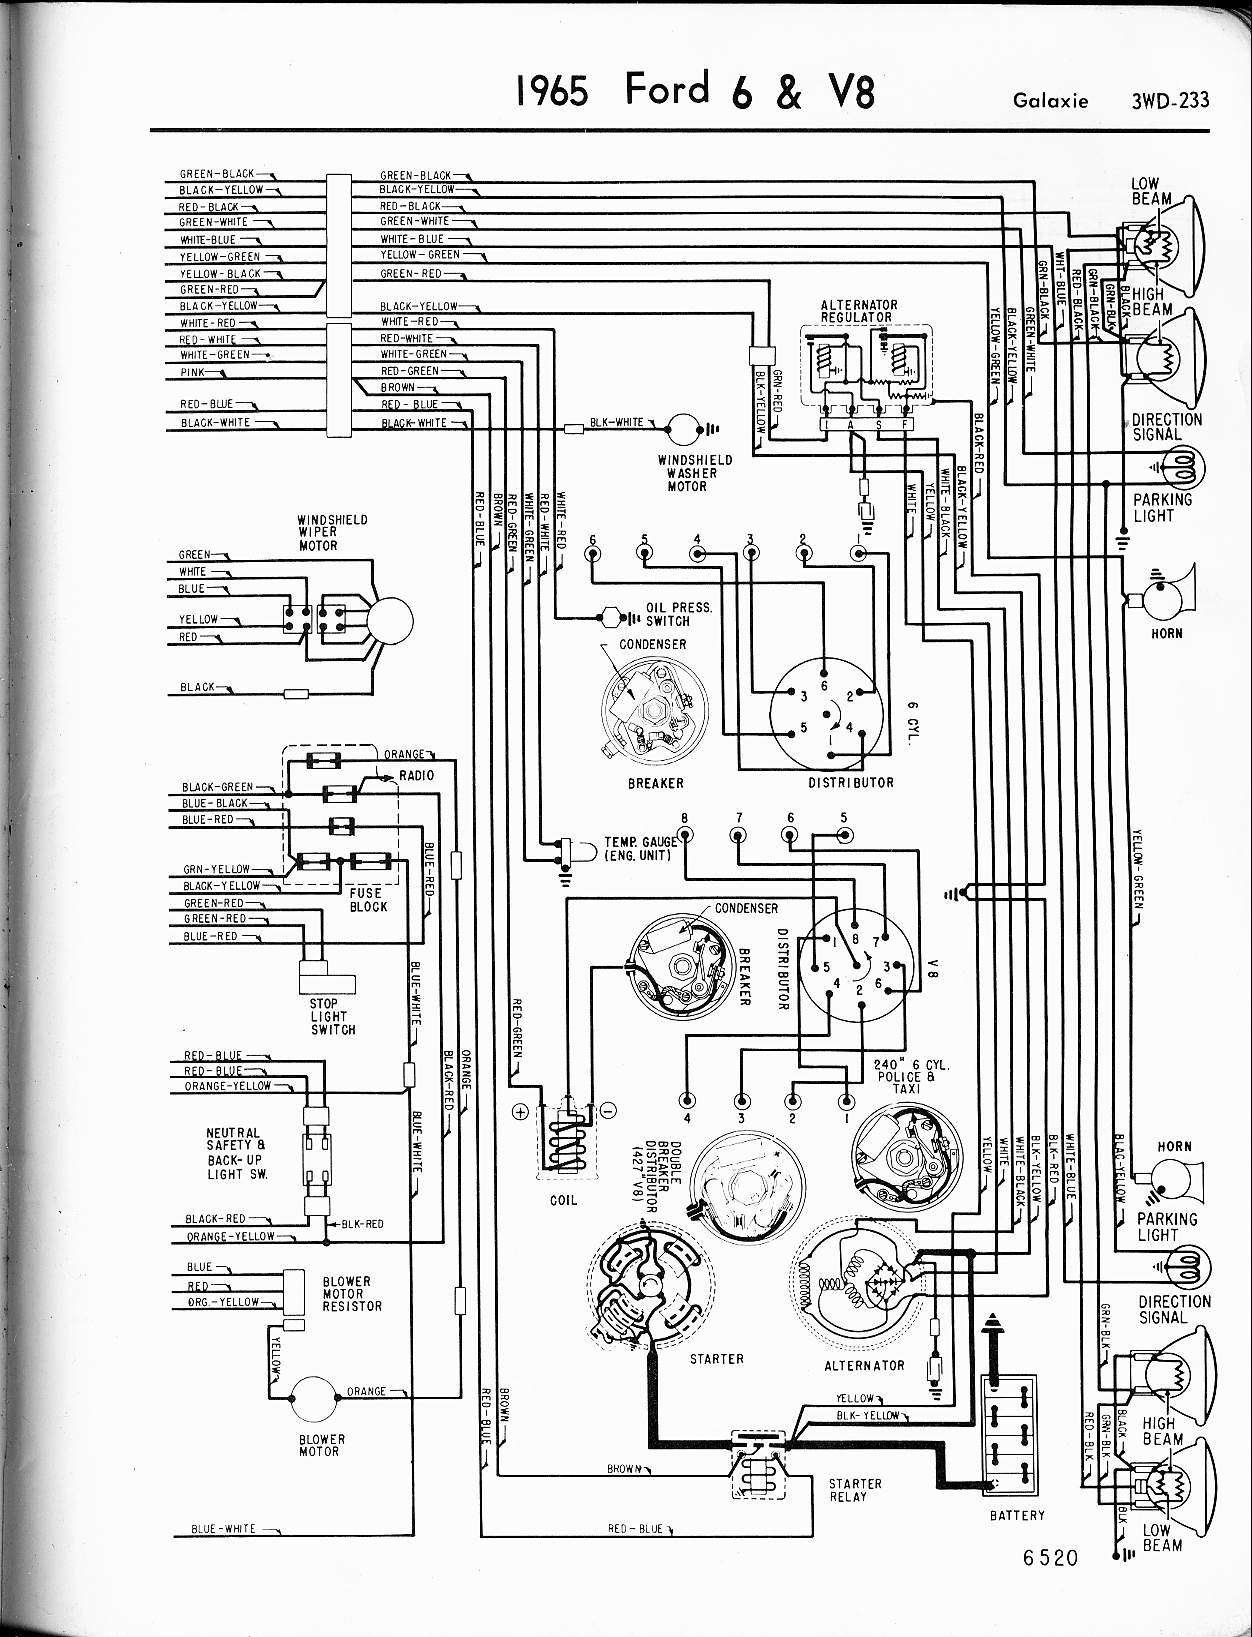 1965 Ford F150 Wiring Diagram - 2005 Chevrolet Suburban Wire Diagram for Wiring  Diagram SchematicsWiring Diagram Schematics